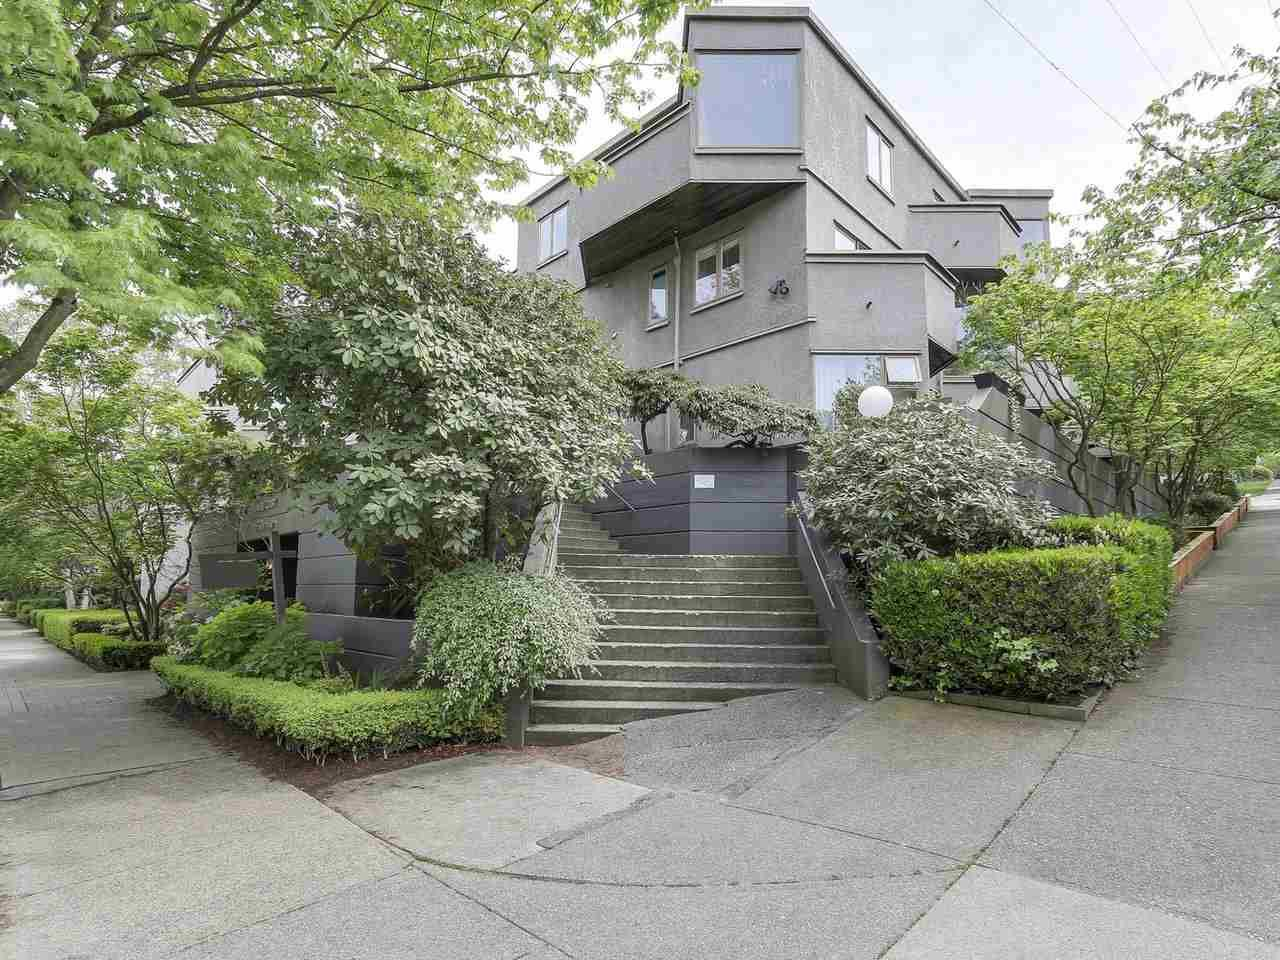 """Main Photo: 58 870 W 7TH Avenue in Vancouver: Fairview VW Townhouse for sale in """"Laurel Court"""" (Vancouver West)  : MLS®# R2169394"""